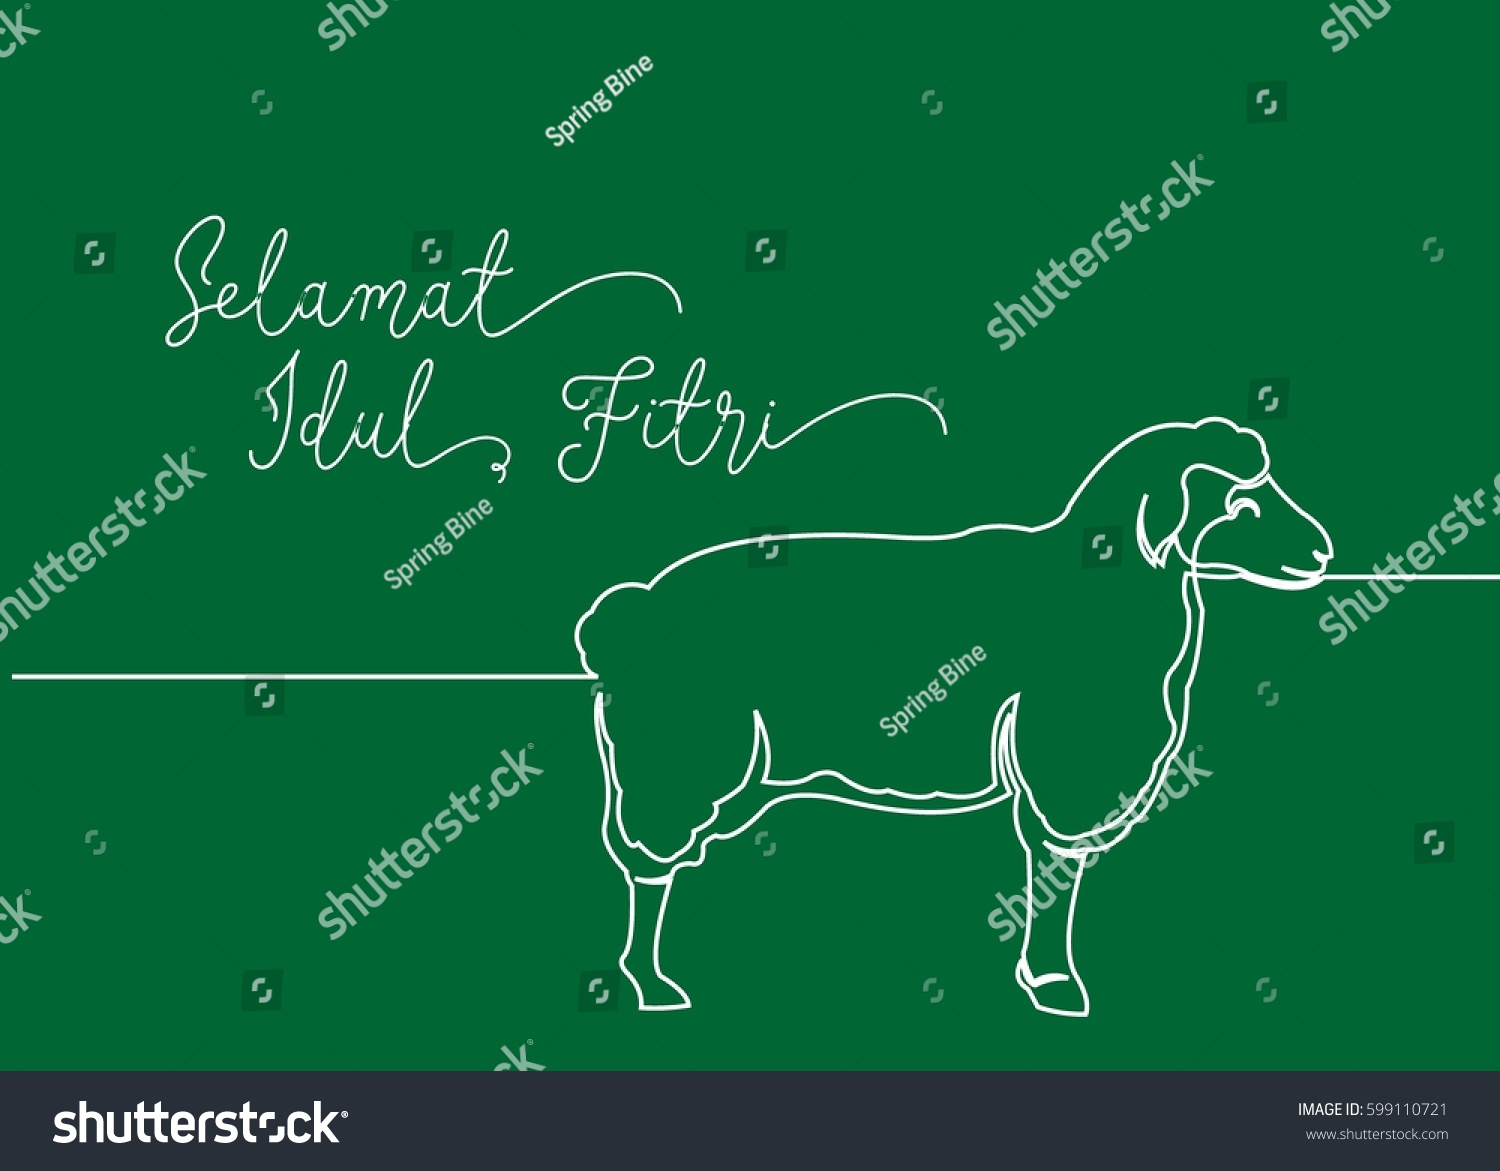 Continues line drawing sheep greeting card stock vector royalty continues line drawing of sheep greeting card contain wording selamat idul fitri in indonesian language m4hsunfo